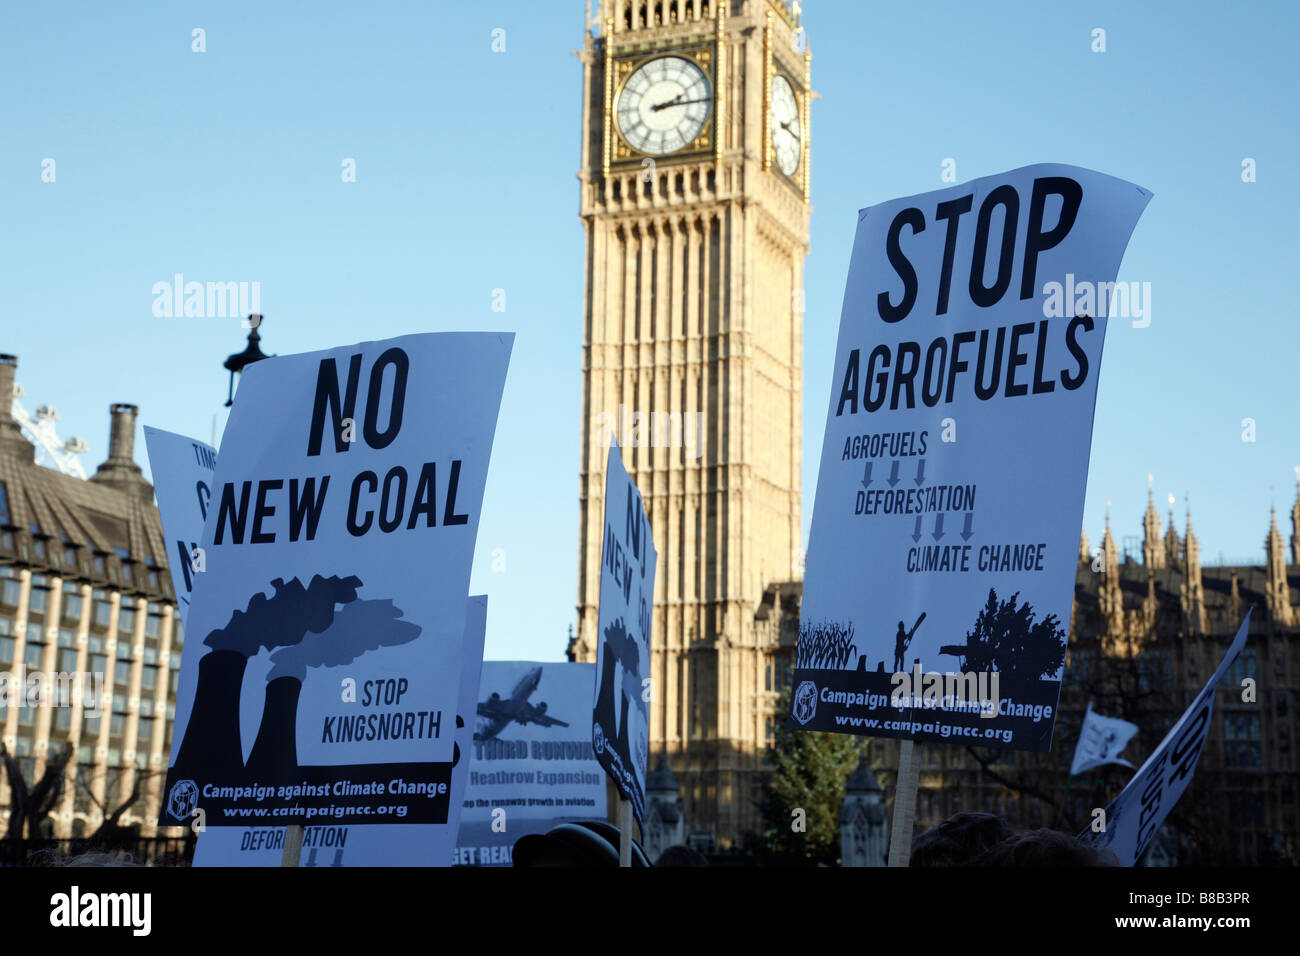 Campaign Against Climate Change, national climate march in London on December 6th 2008. - Stock Image